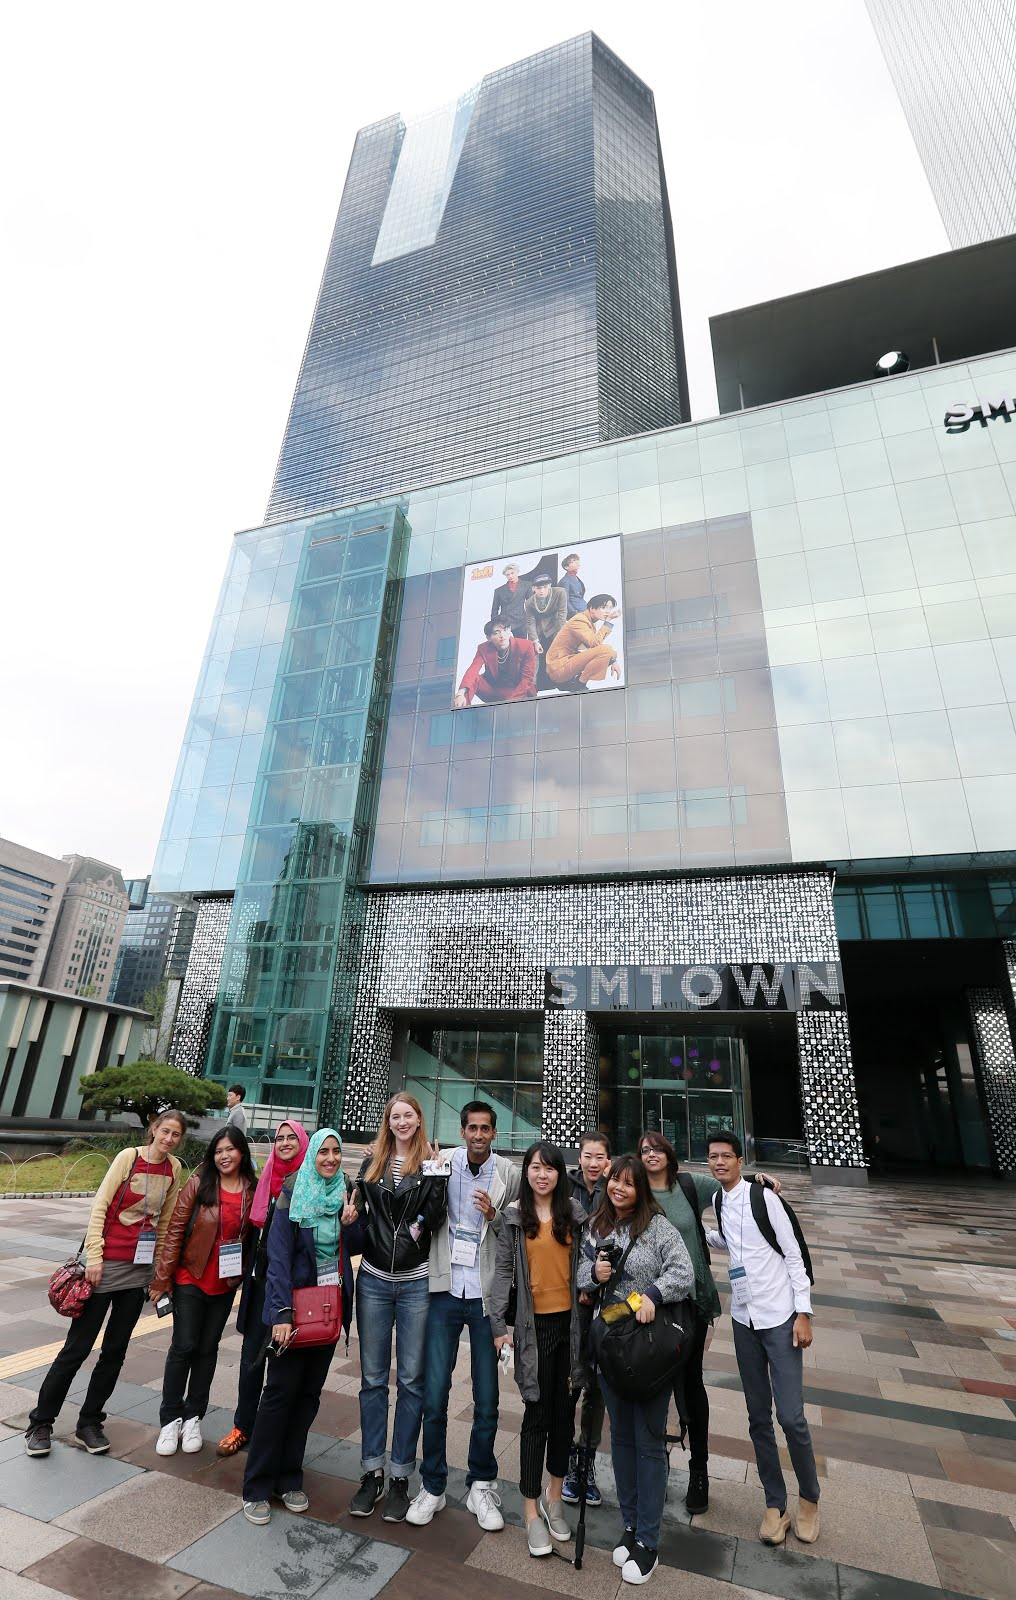 Unleashing our inner KPOP star in SM TOWN situated in Seoul's famous Gangnam district.